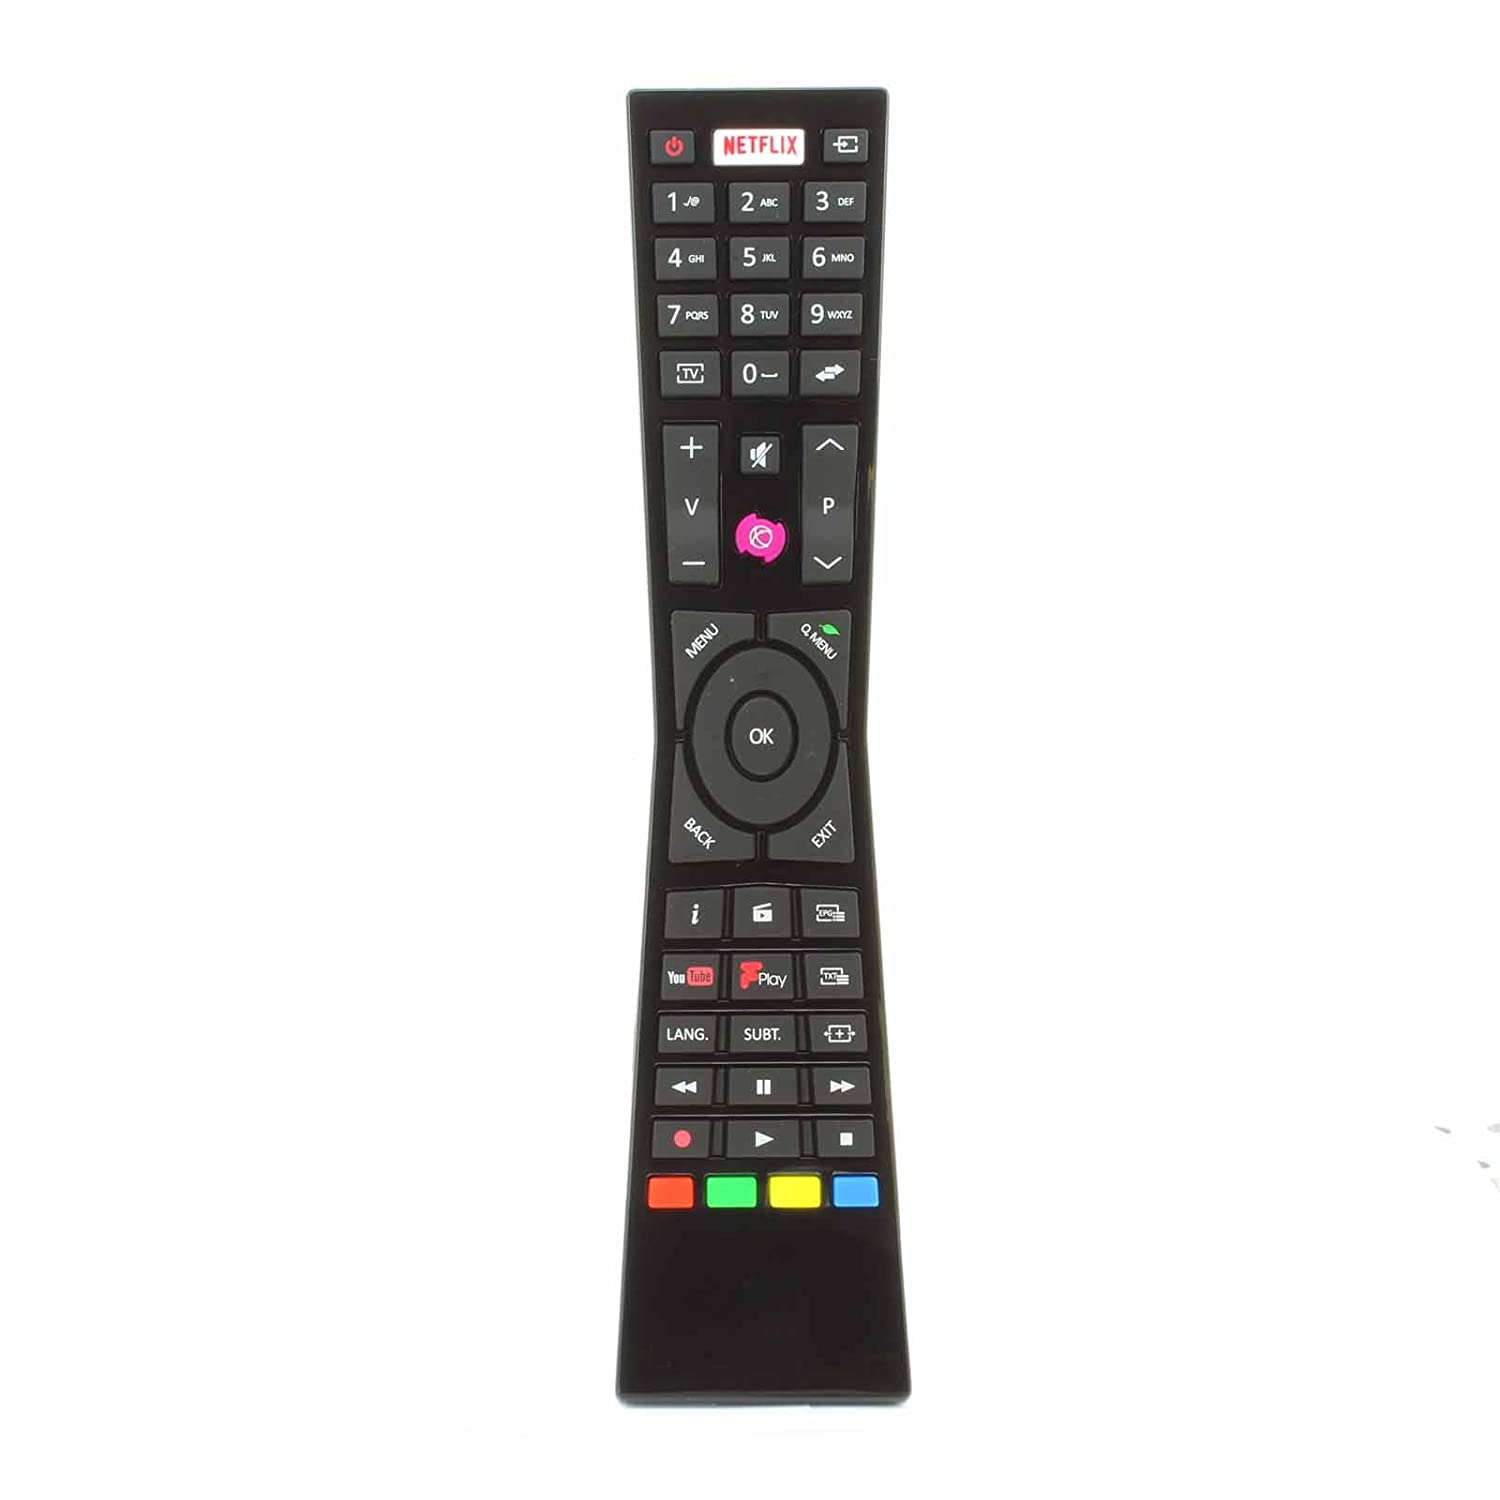 Replacement Remote Control for Currys JVC RM-C3231 RMC3231 Smart 4K LED TVs  with NETFLIX YouTube Freeview - Fits Many Models